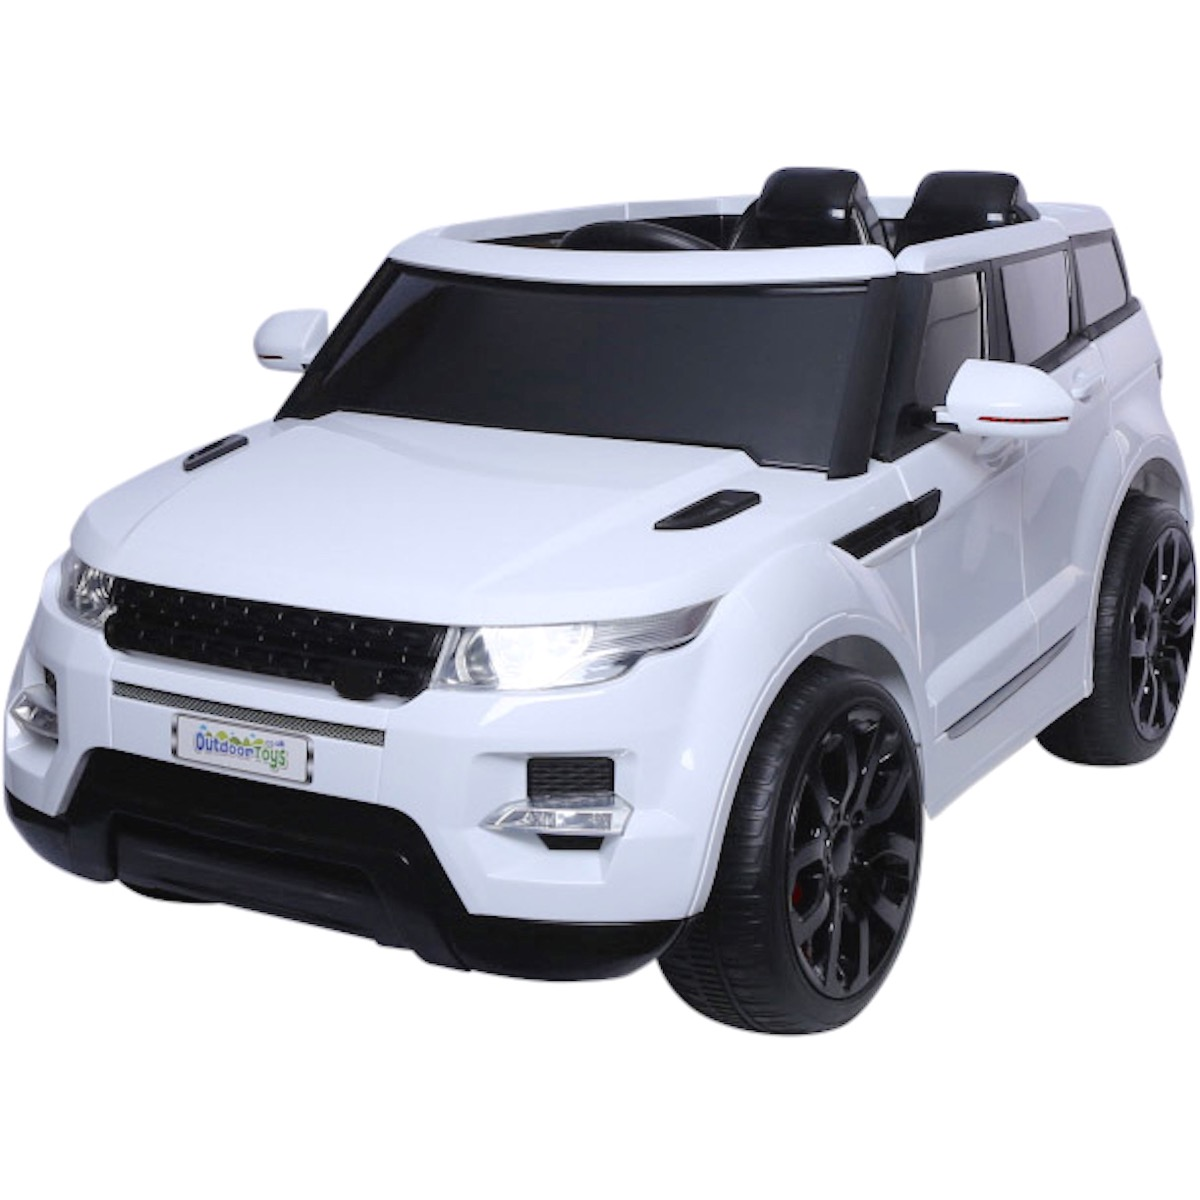 Maxi Range Rover Hse Sport Style 12v Electric Battery Ride On Car Wiring Diagram 12 Volt Toys Jeep White For Just 19995 Outdoor